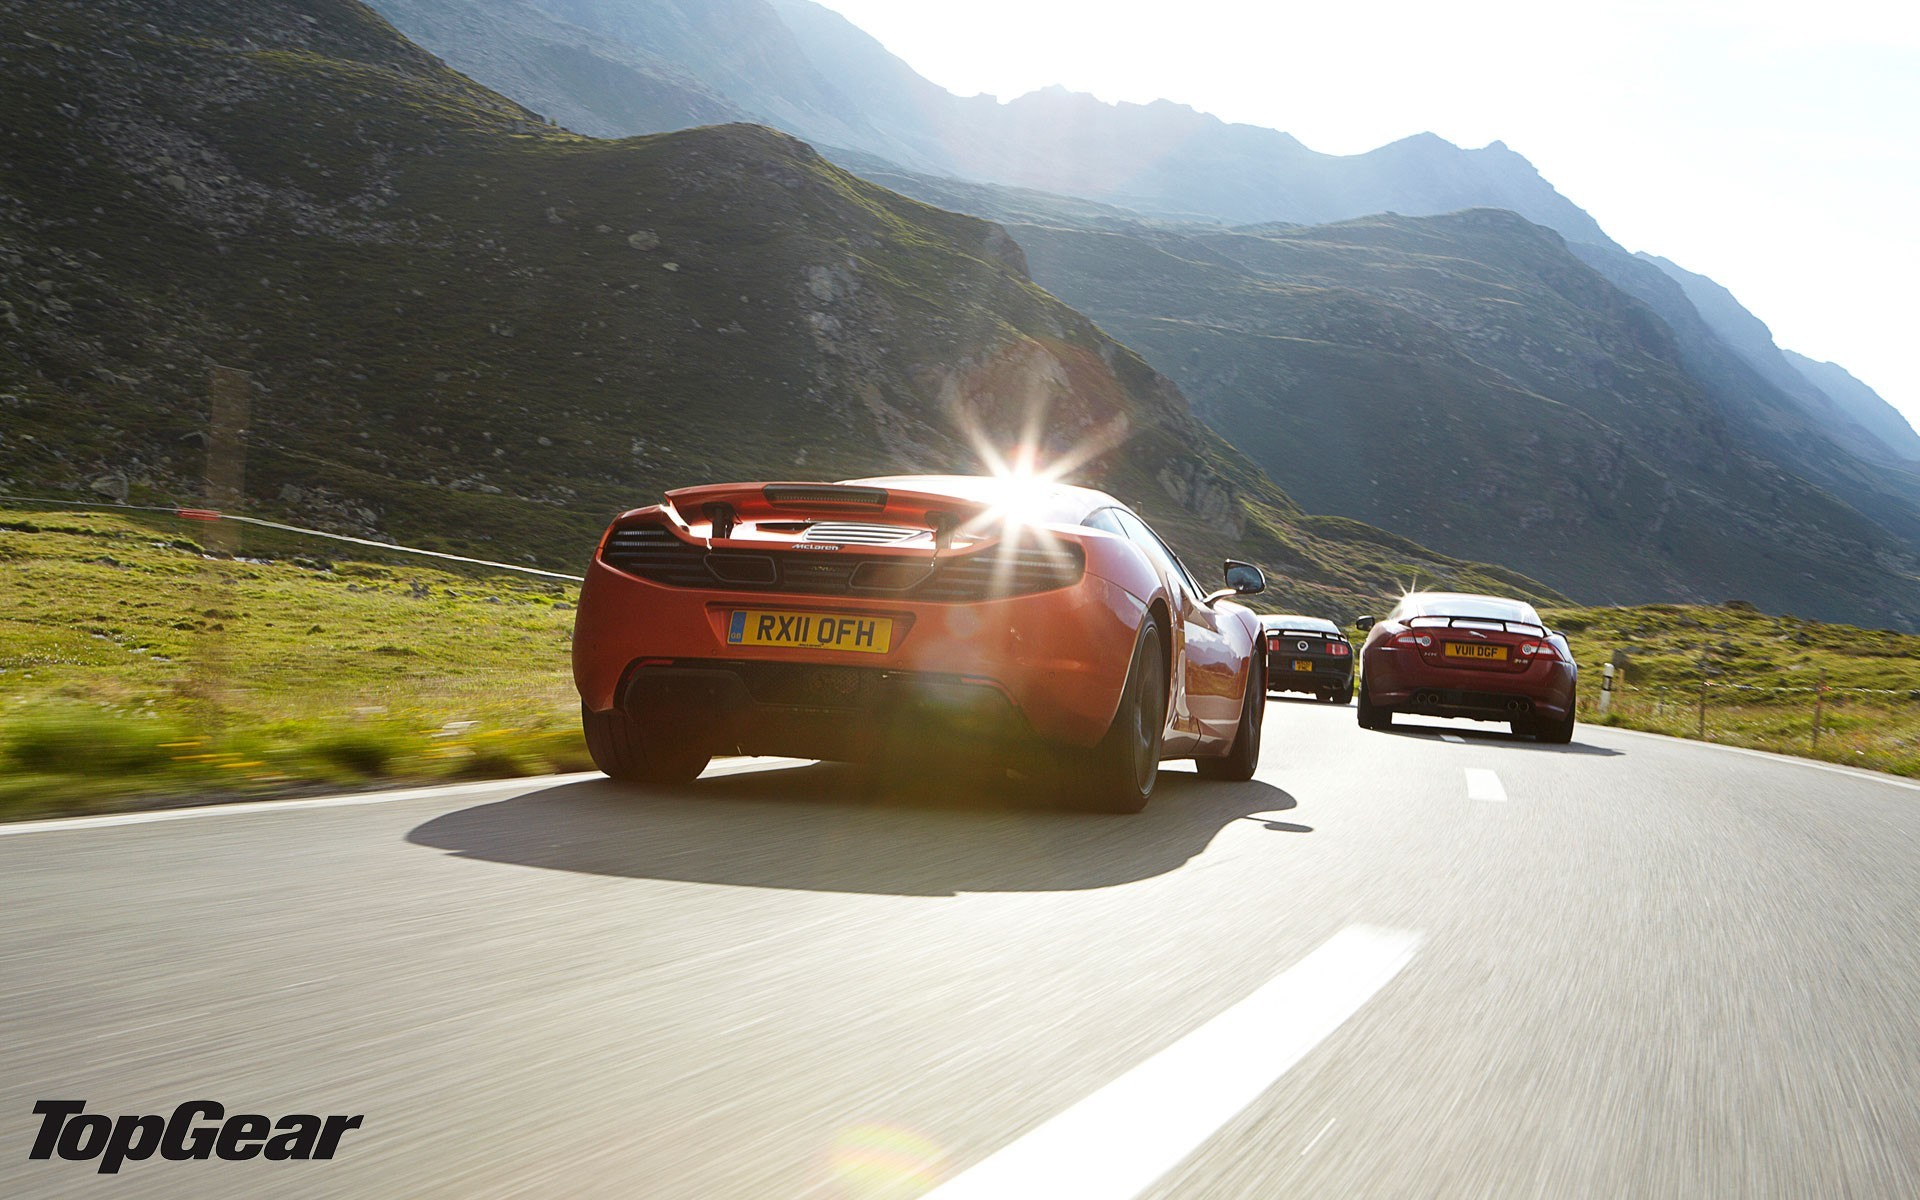 Mountains cars top gear HD Wallpaper